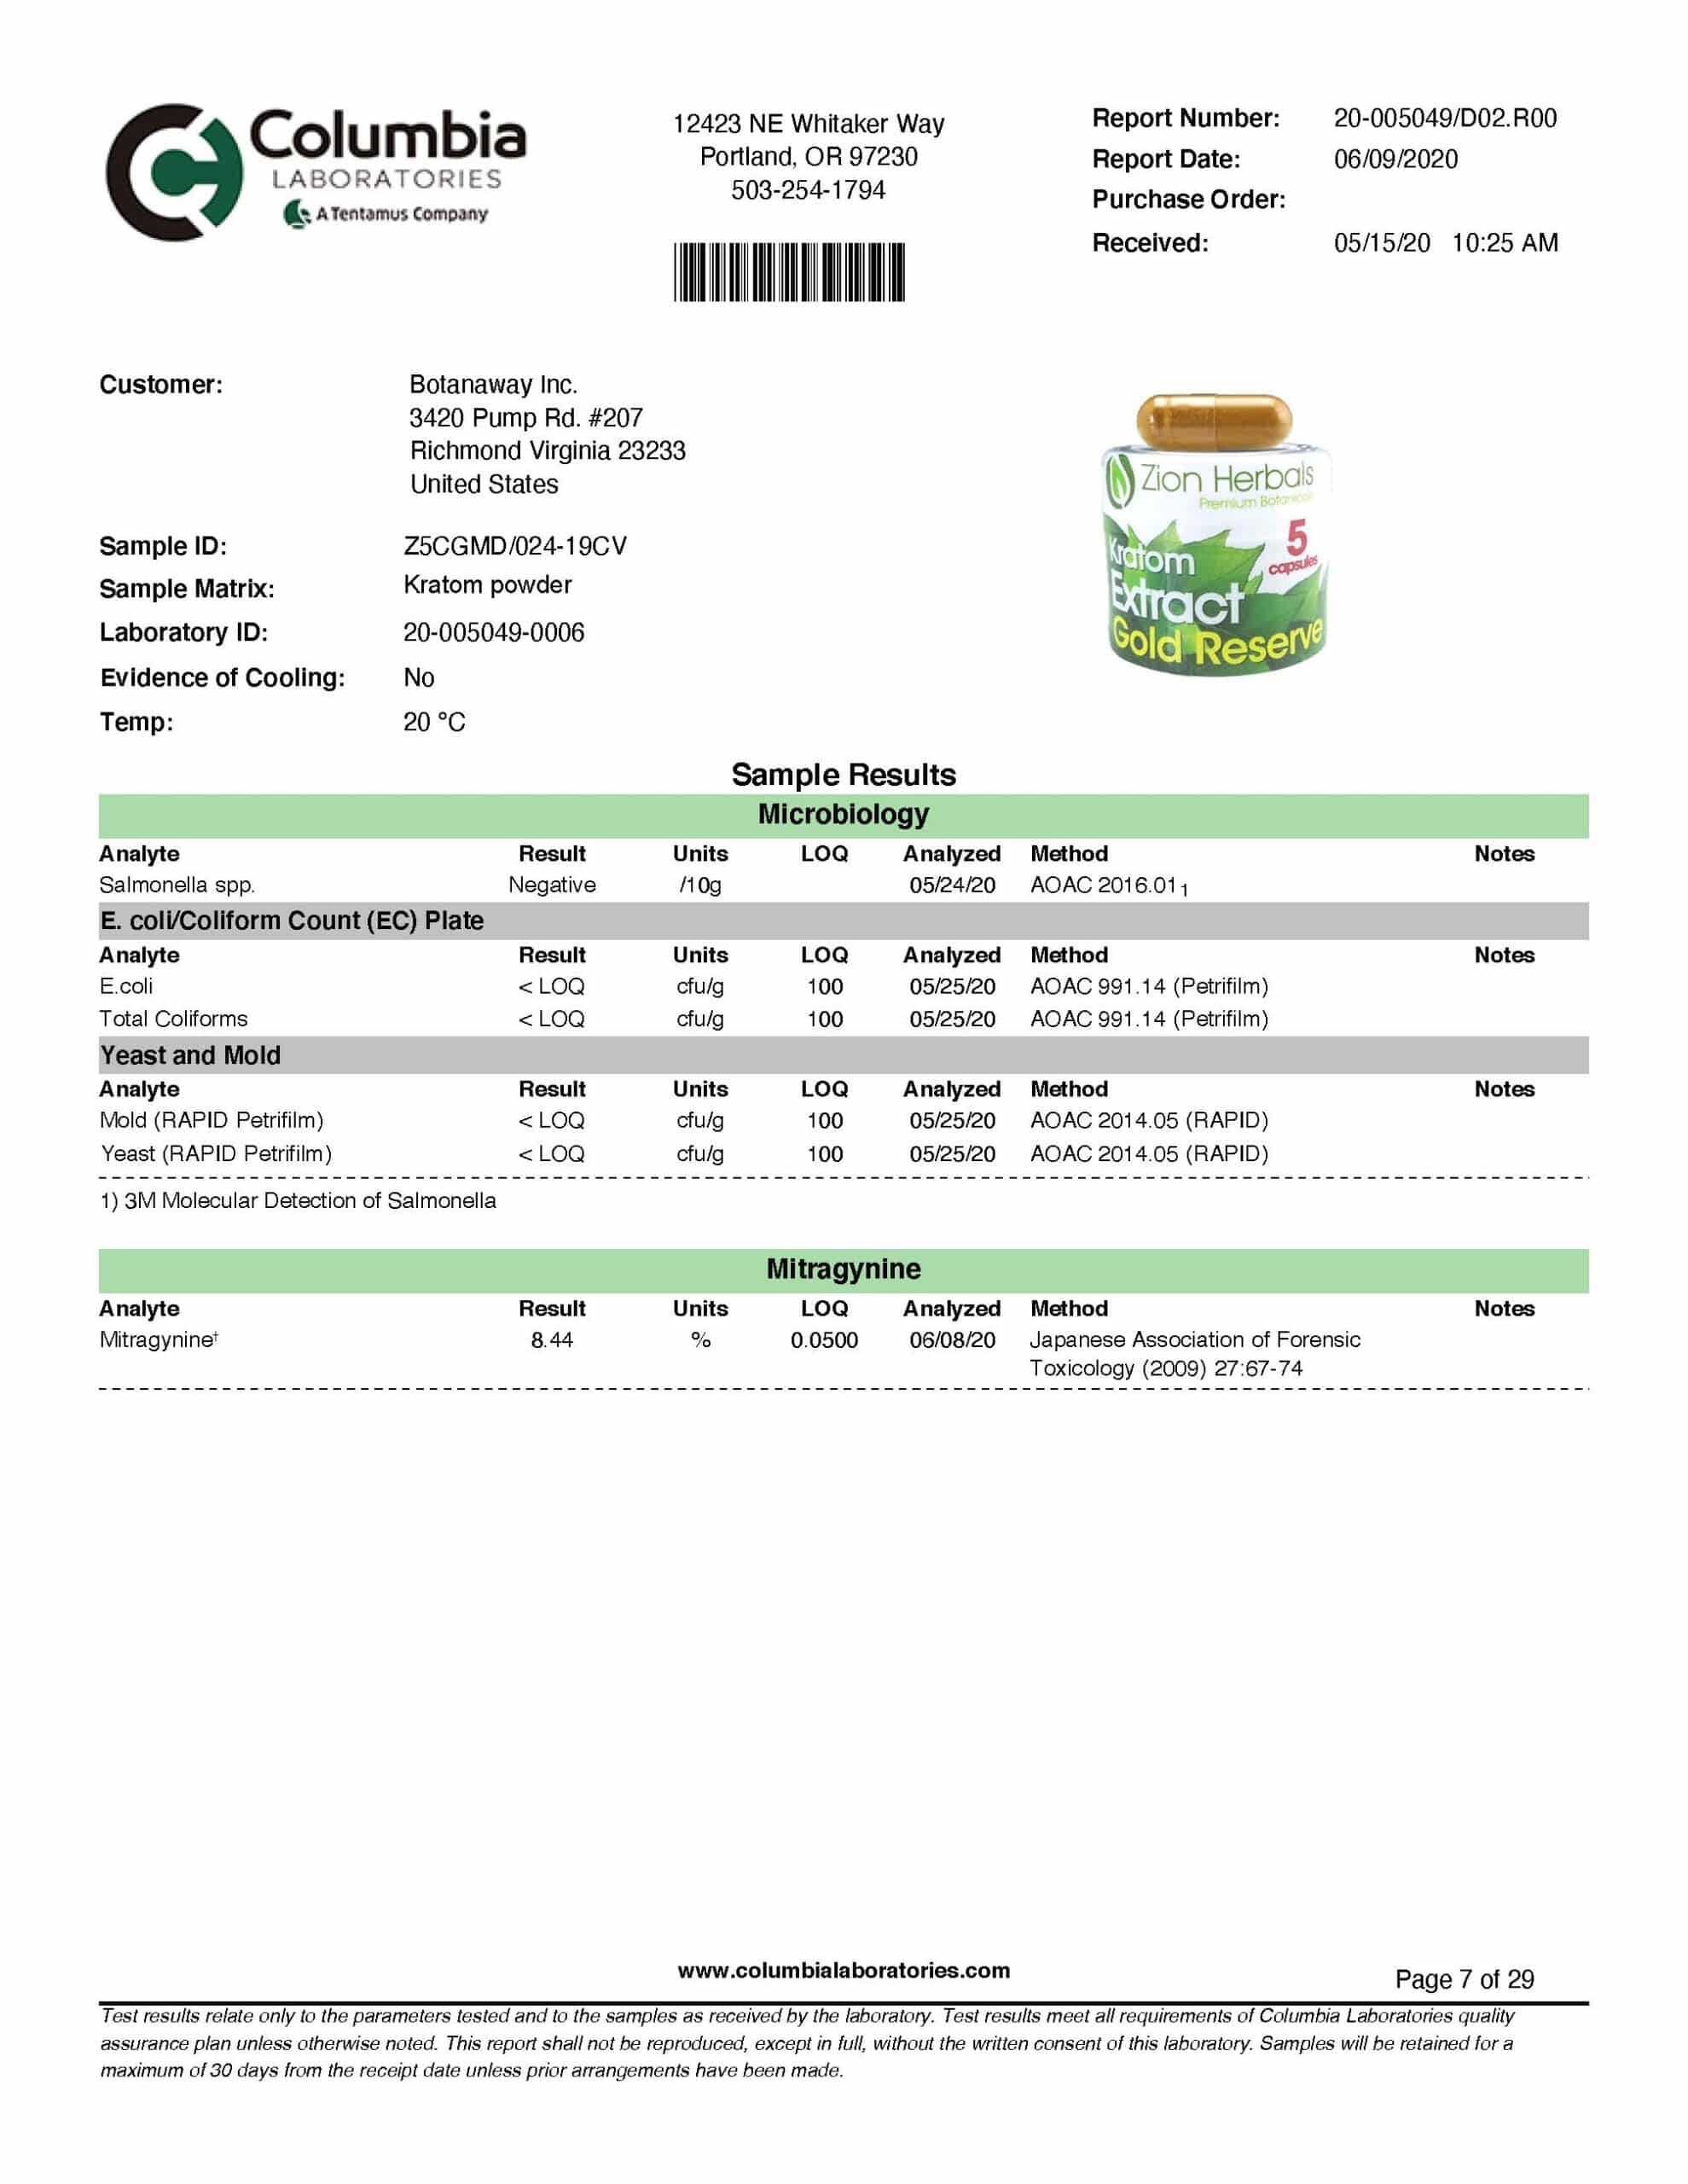 Zion Herbals Extract Capsule 5 ct Lab Test